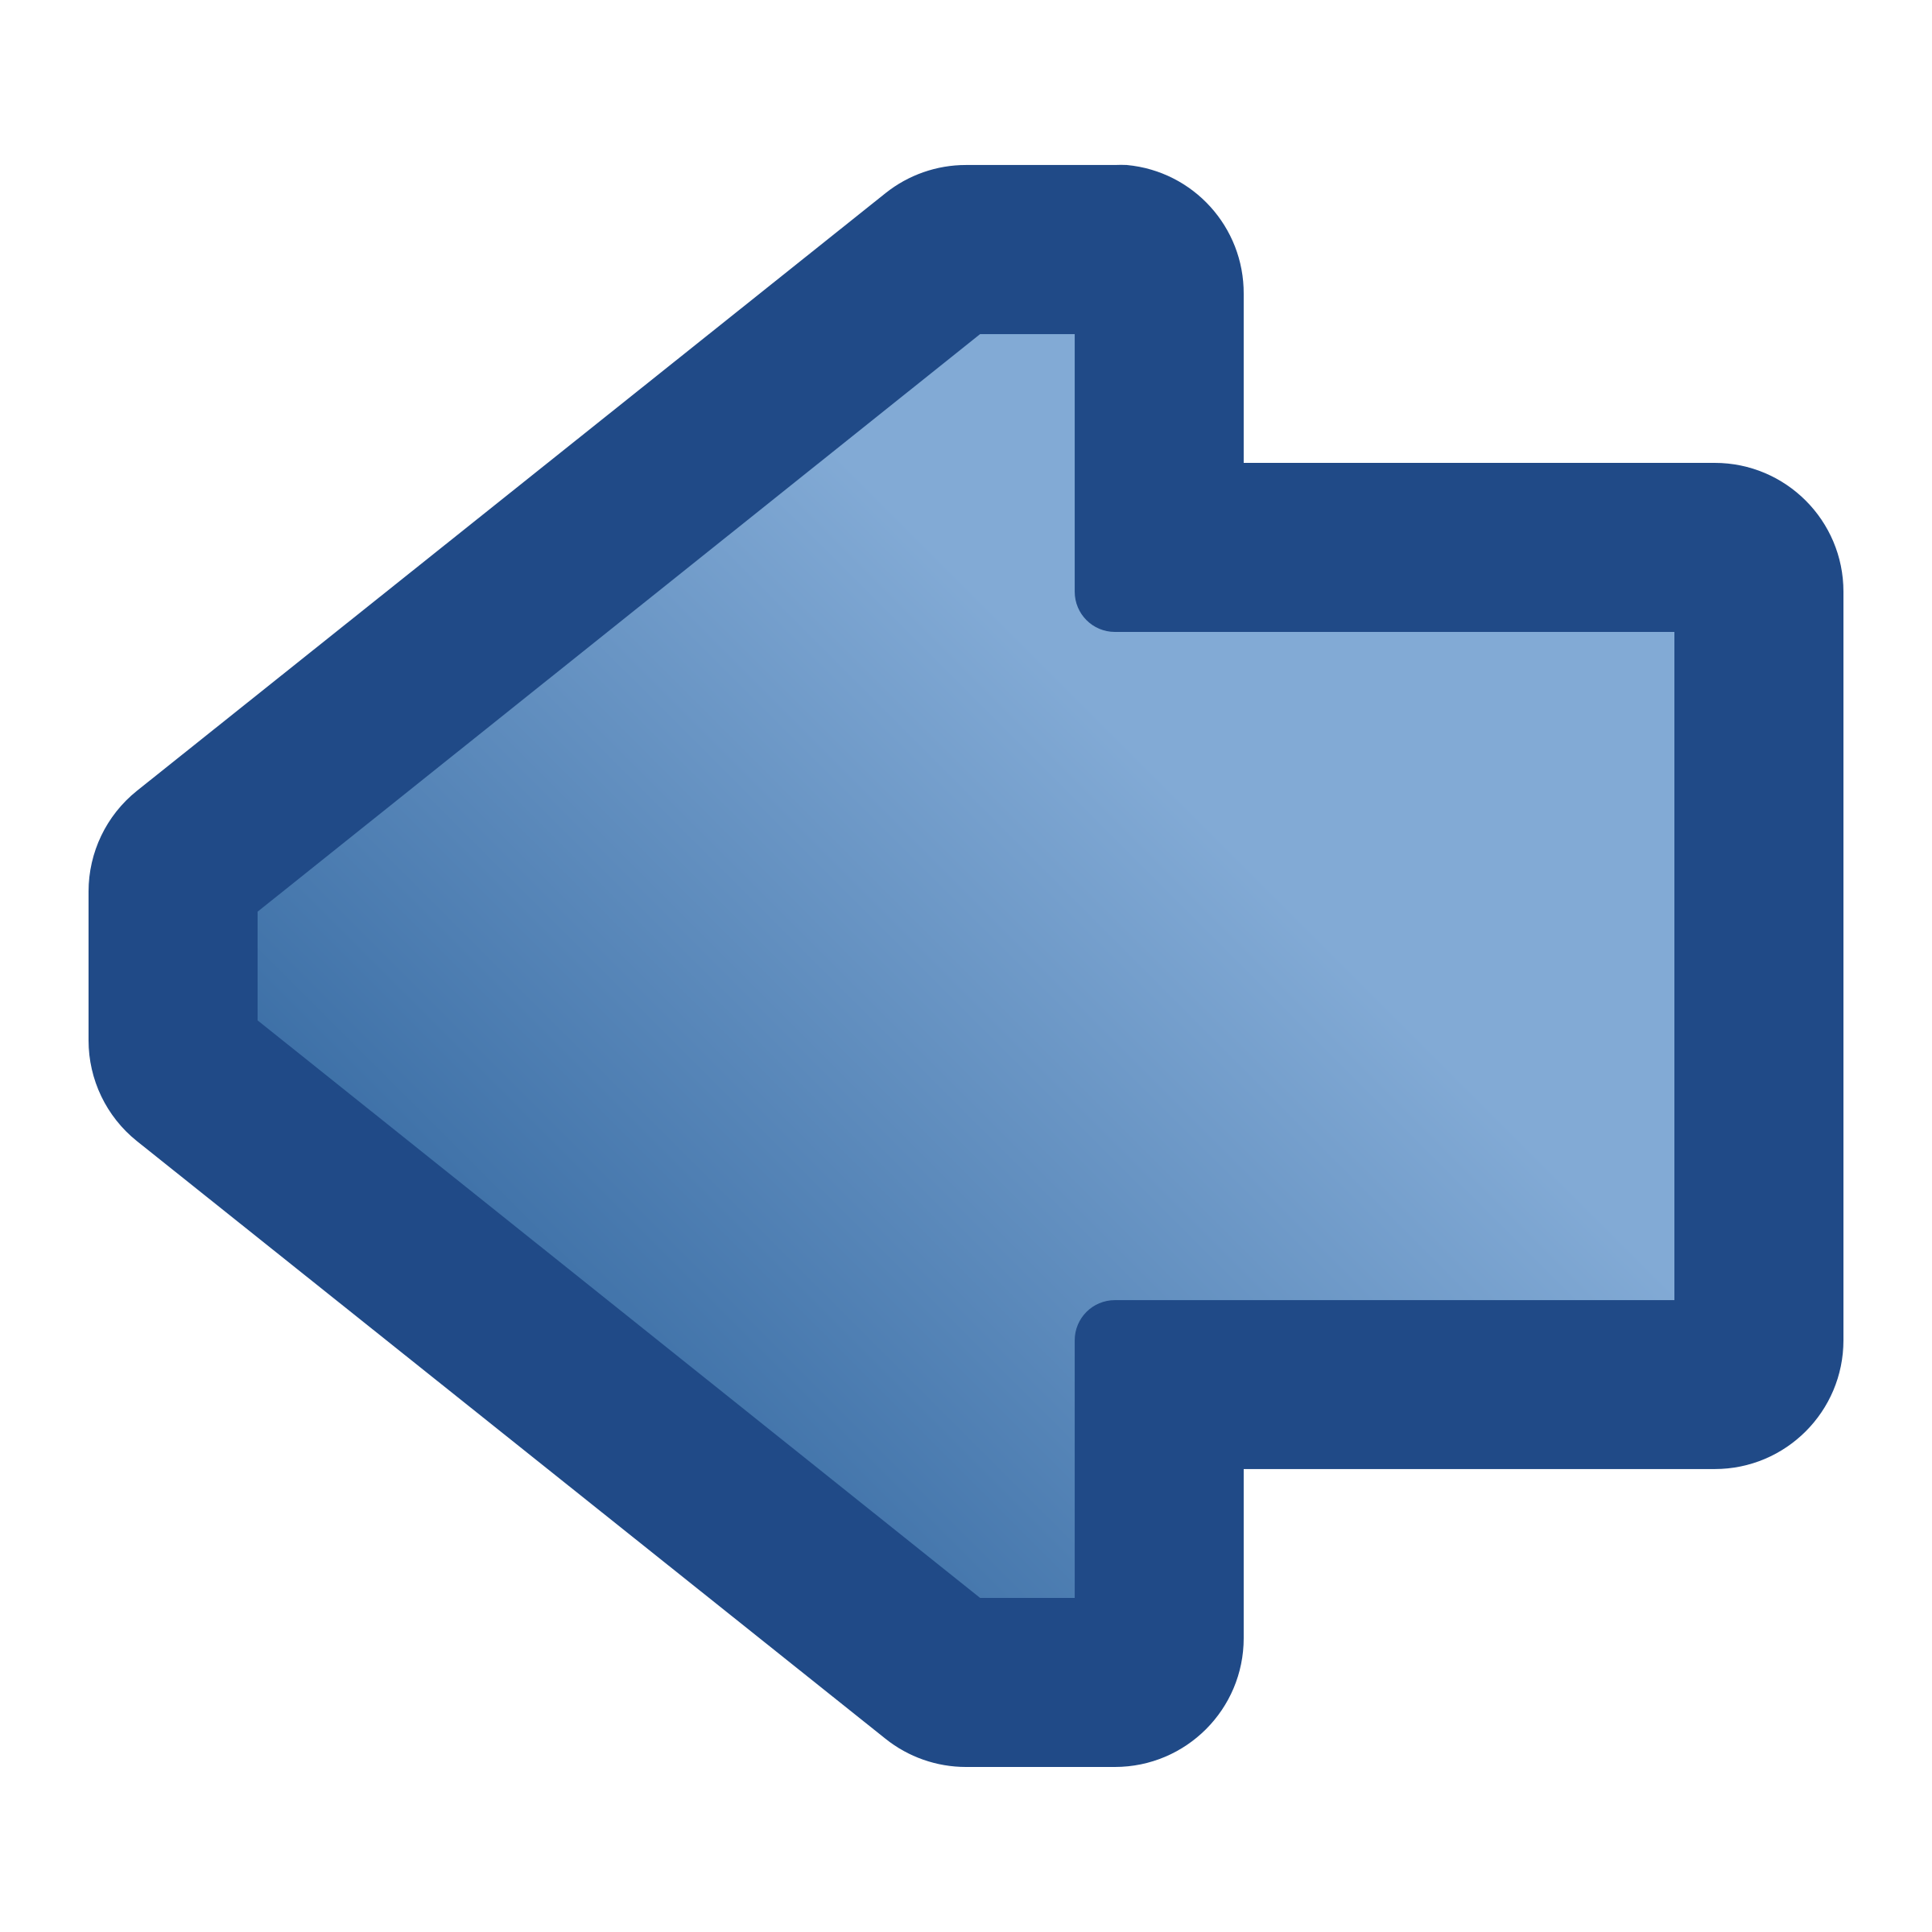 Clipart arrow left image library stock Clipart - icon-arrow-left-blue image library stock